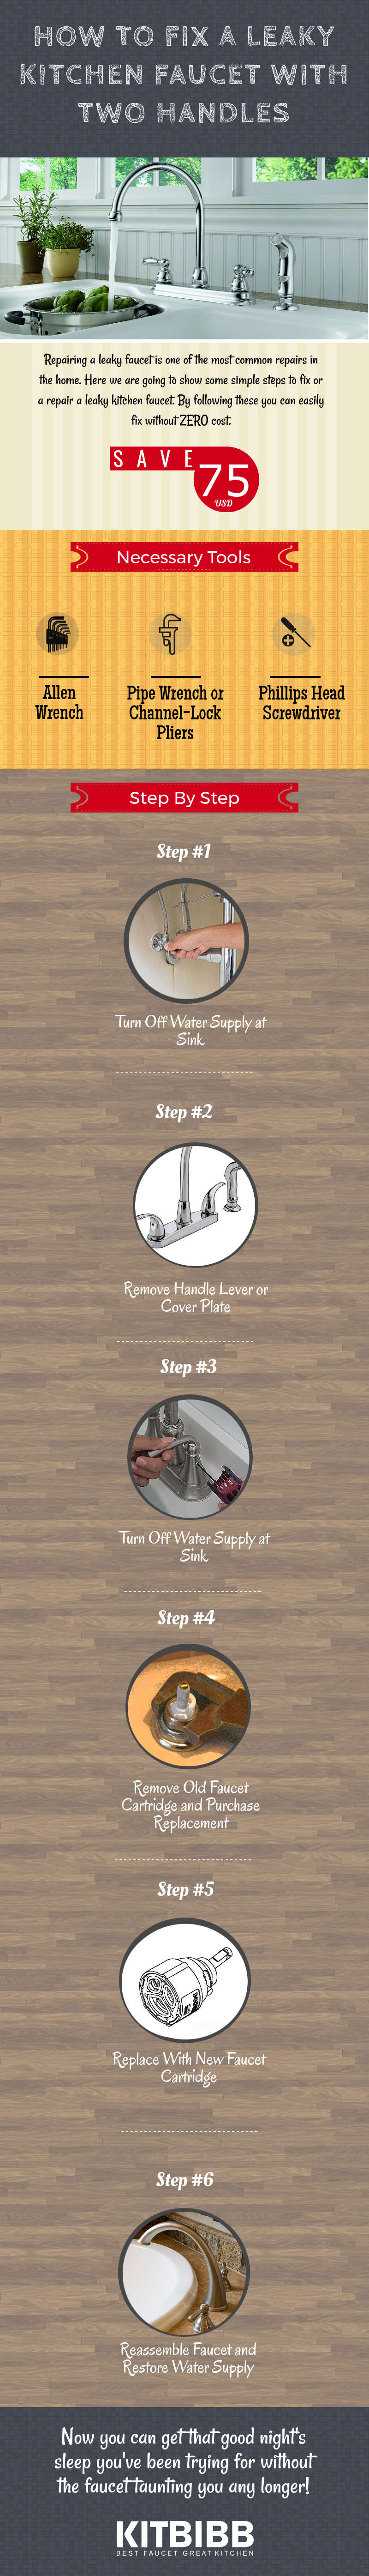 how to fix a leaky kitchen faucet with two handles